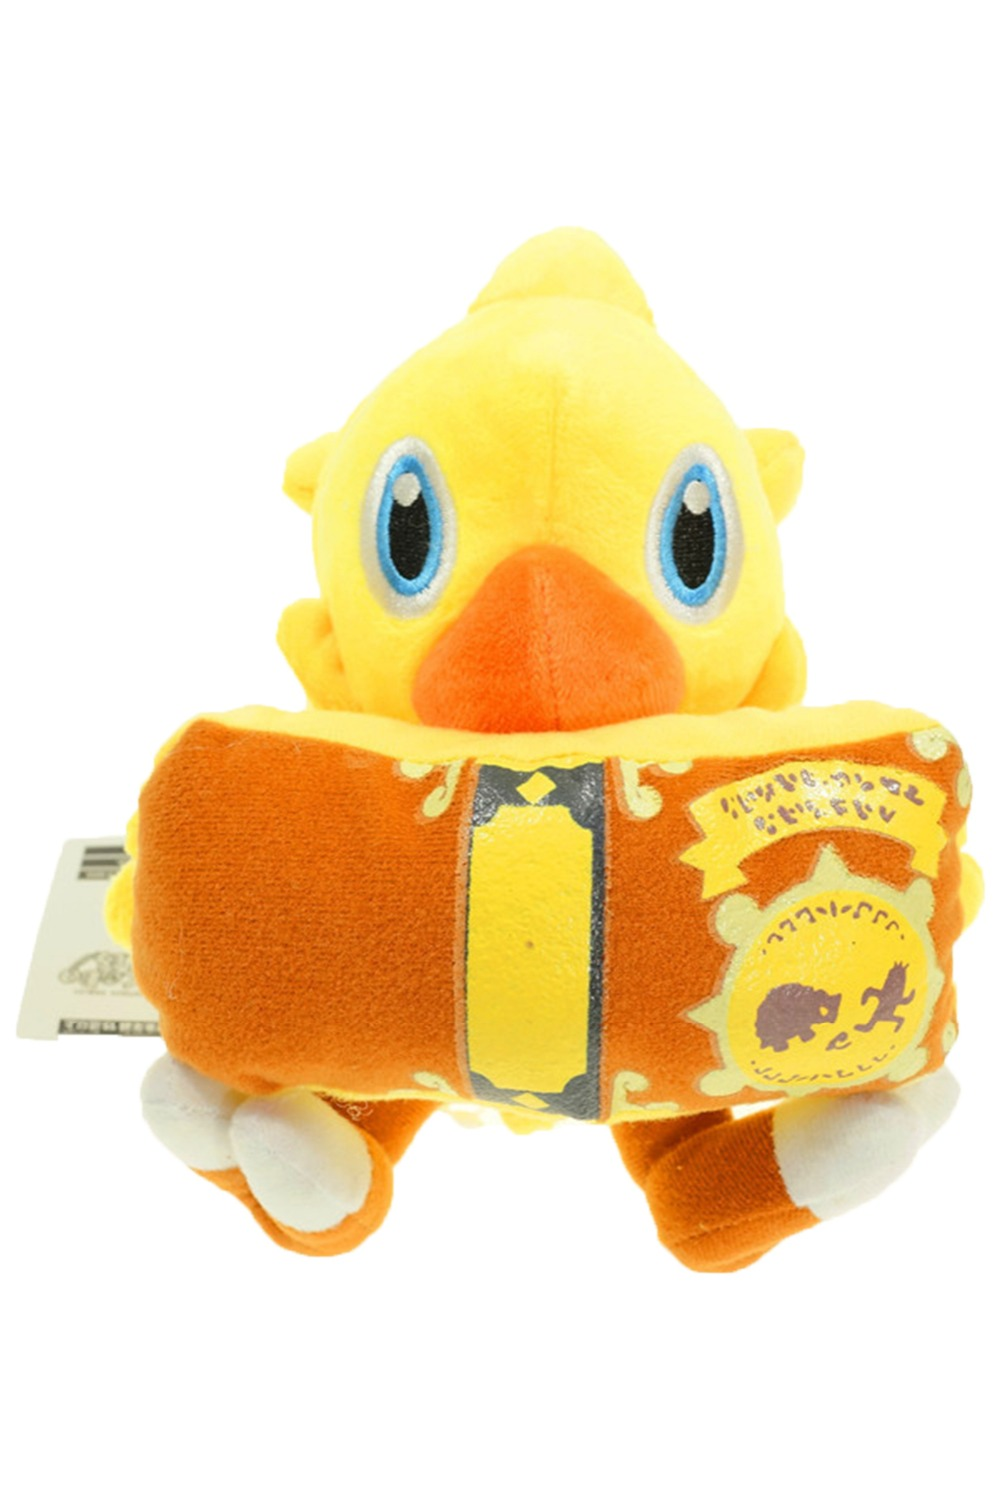 Game Final Fantasy VII Chocobo Plush Toy Movie & TV Cute Stuffed Animal Soft Toys Kids Gift Cosplay For Costume